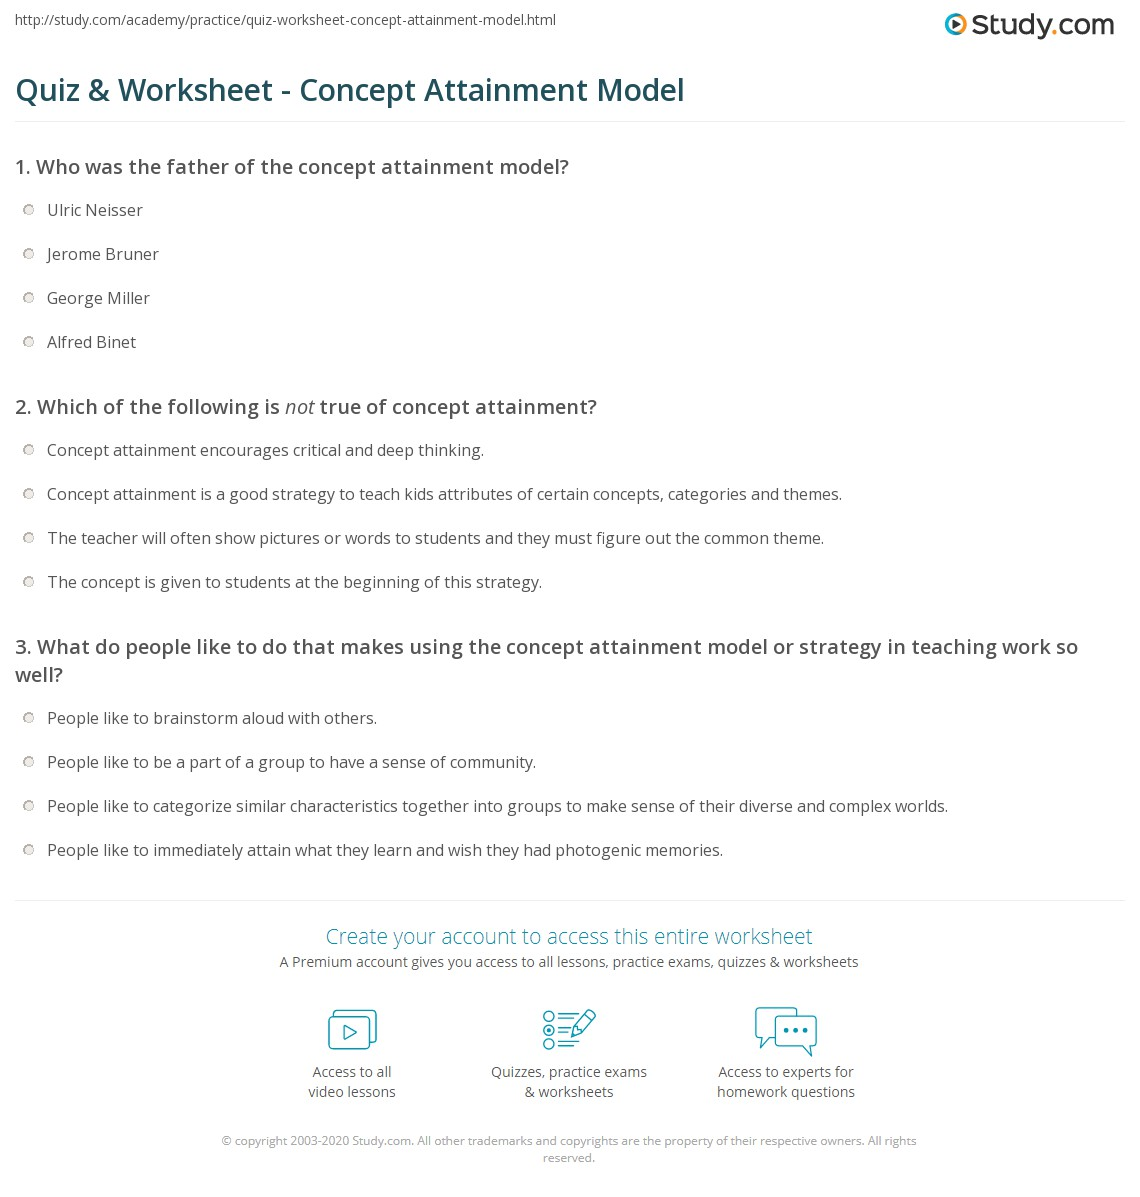 Print Concept Attainment: Model & Strategy Worksheet